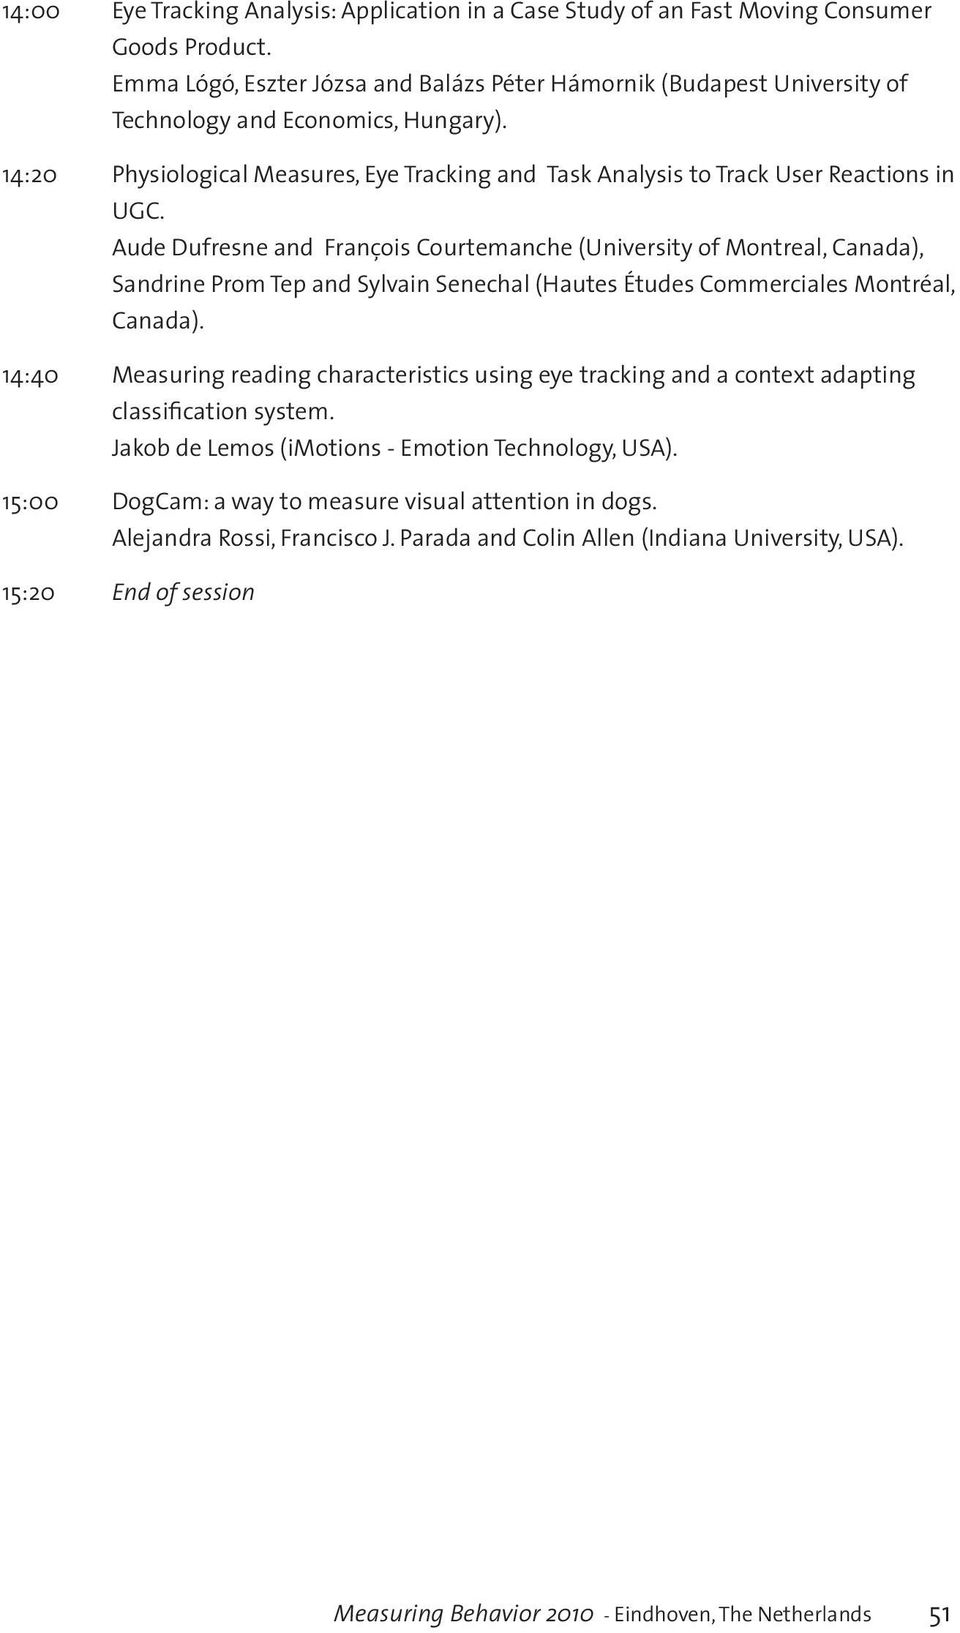 14:20 Physiological Measures, Eye Tracking and Task Analysis to Track User Reactions in UGC.